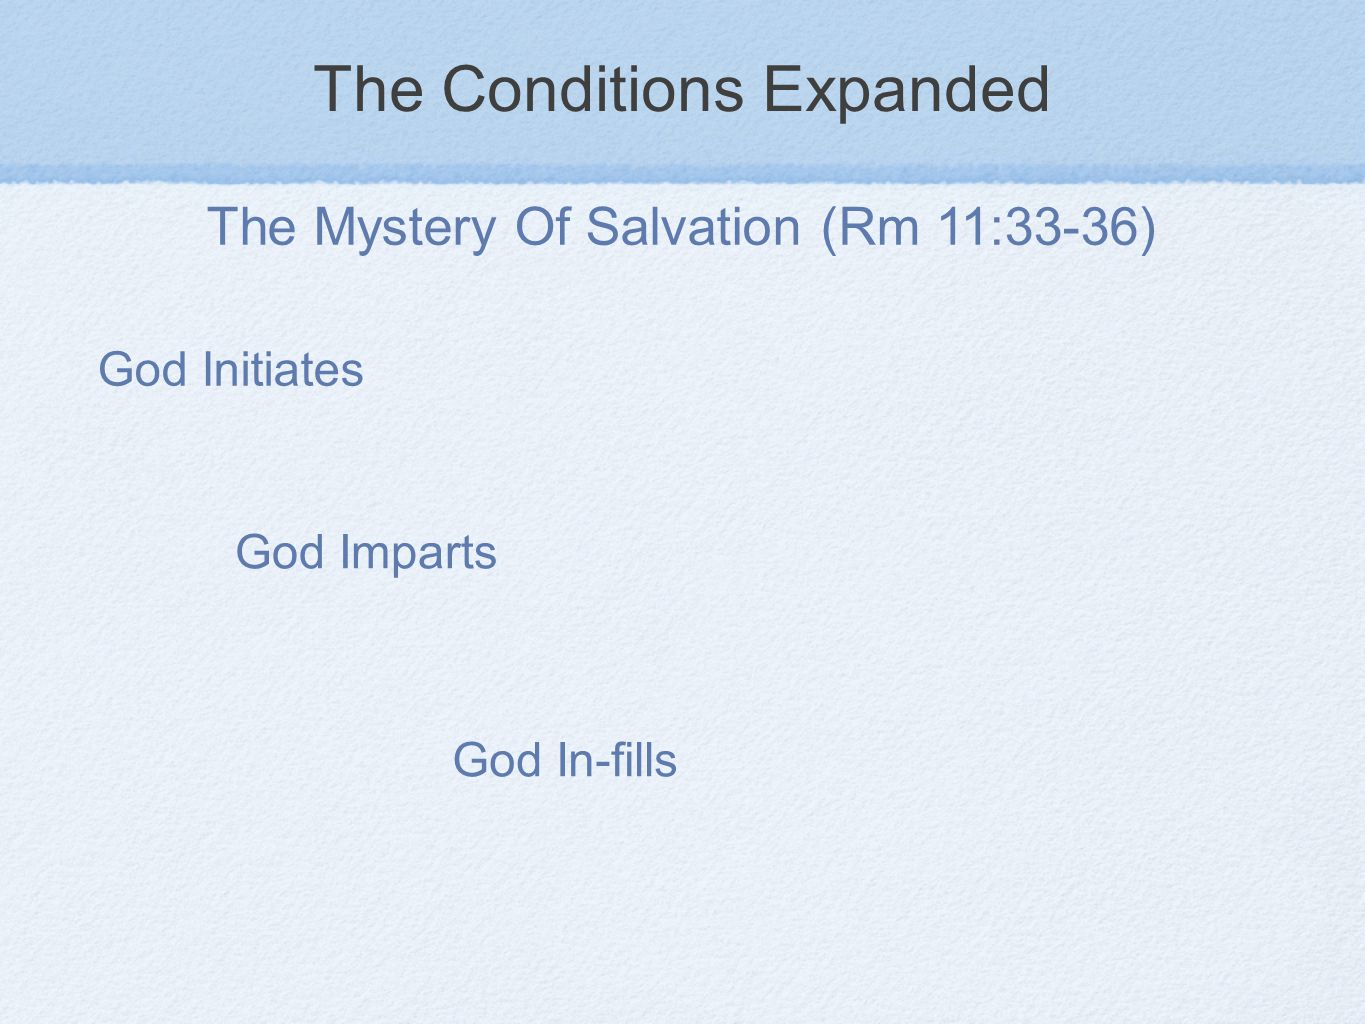 The Conditions Expanded The Mystery Of Salvation (Rm 11:33-36) God Initiates God Imparts God In-fills